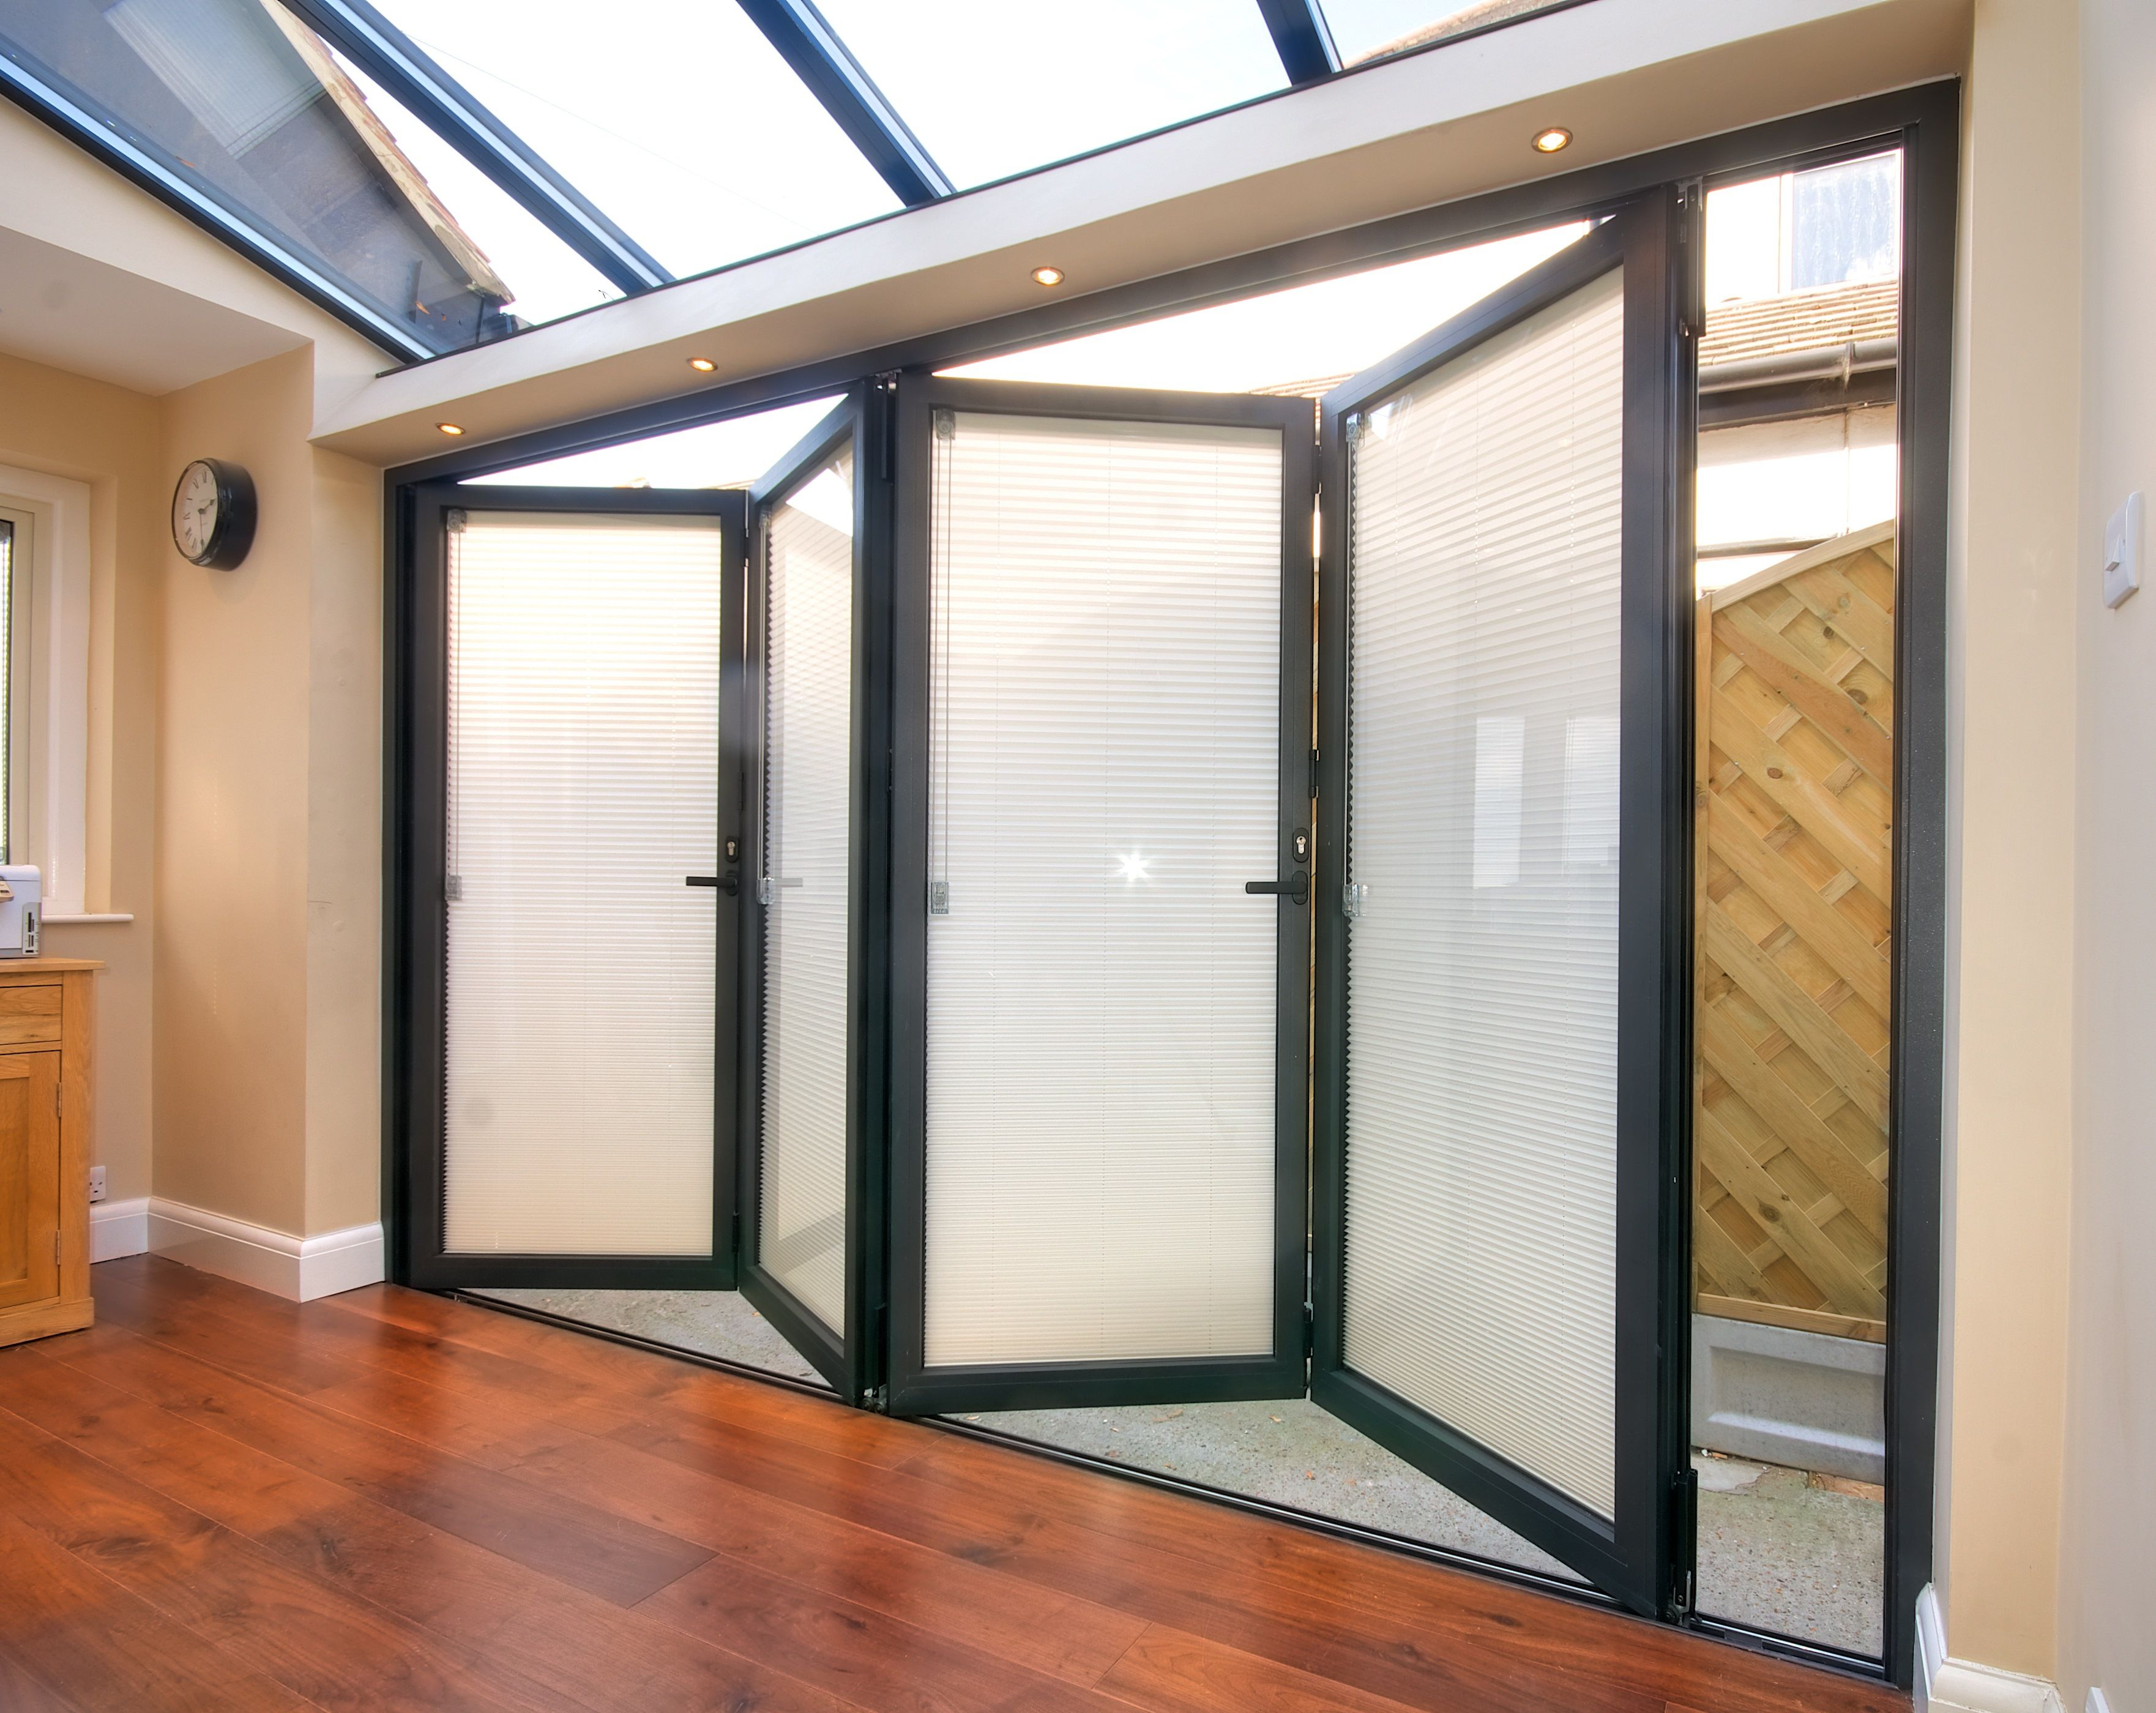 Uni-blind integral blinds are situated inside the double glazed ...